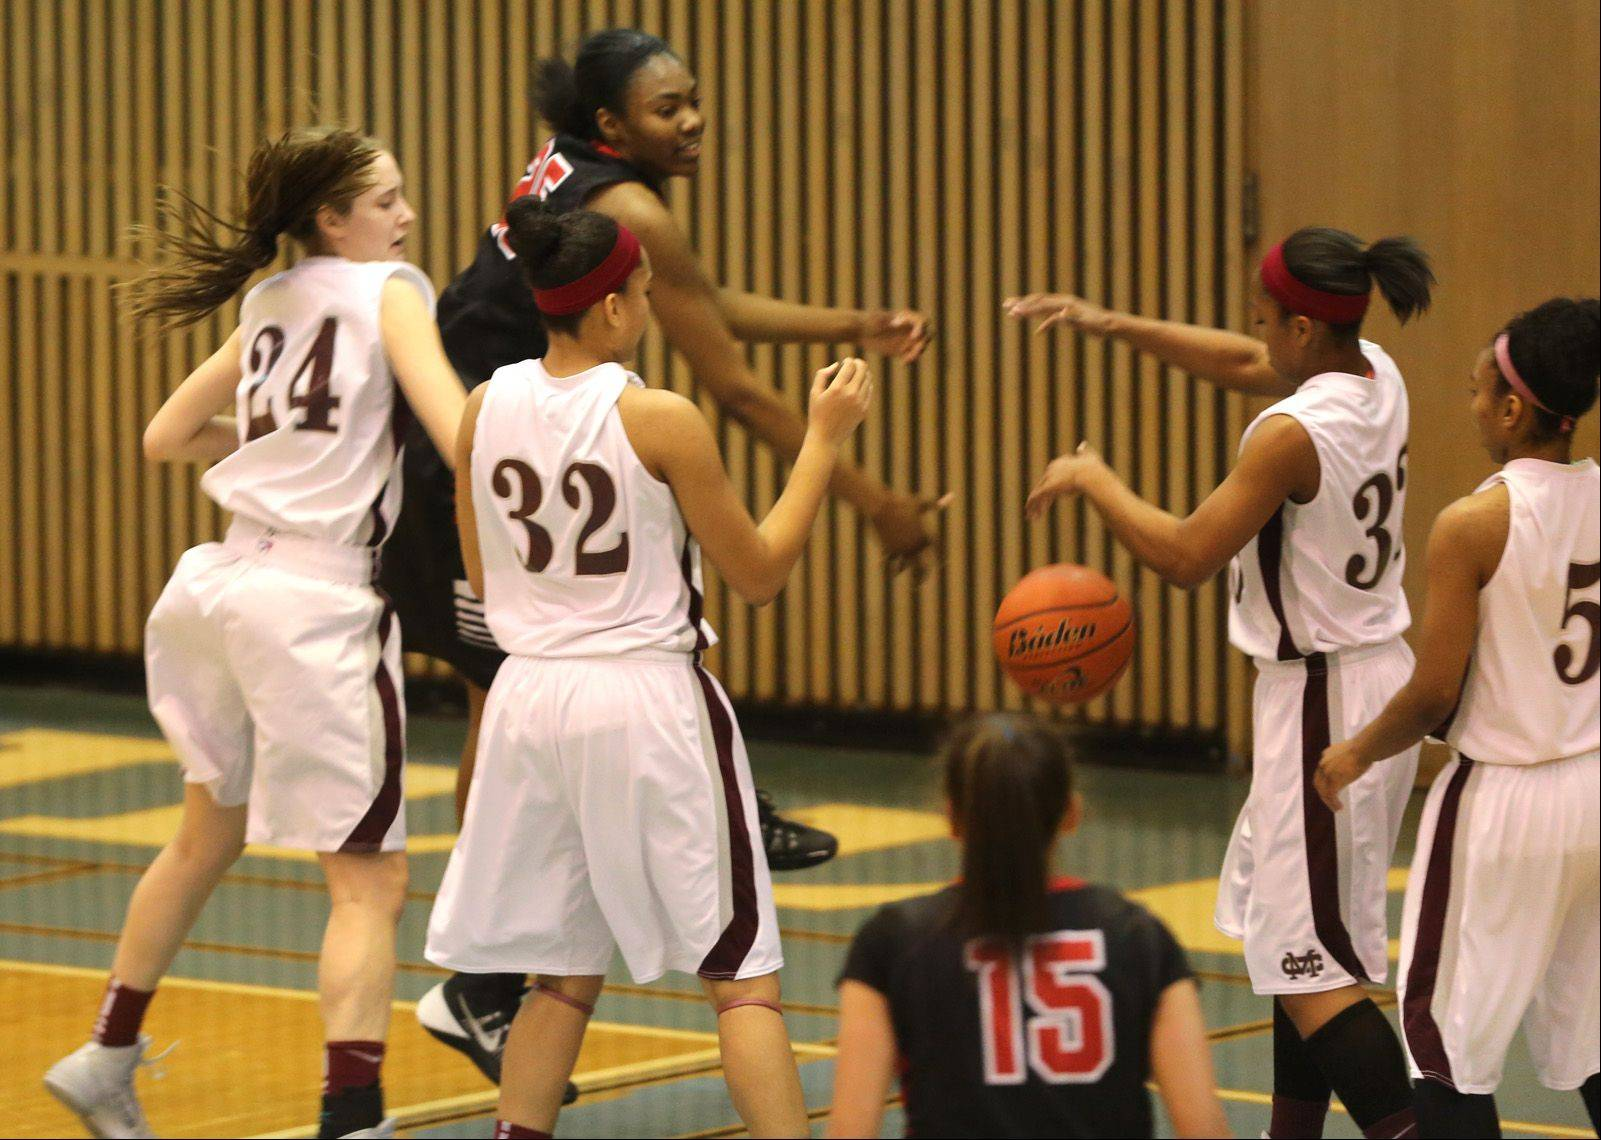 Montini plays Bollingbrook Monday, Jan. 20 at Willowbrook High School in Villa Park for girls basketball.